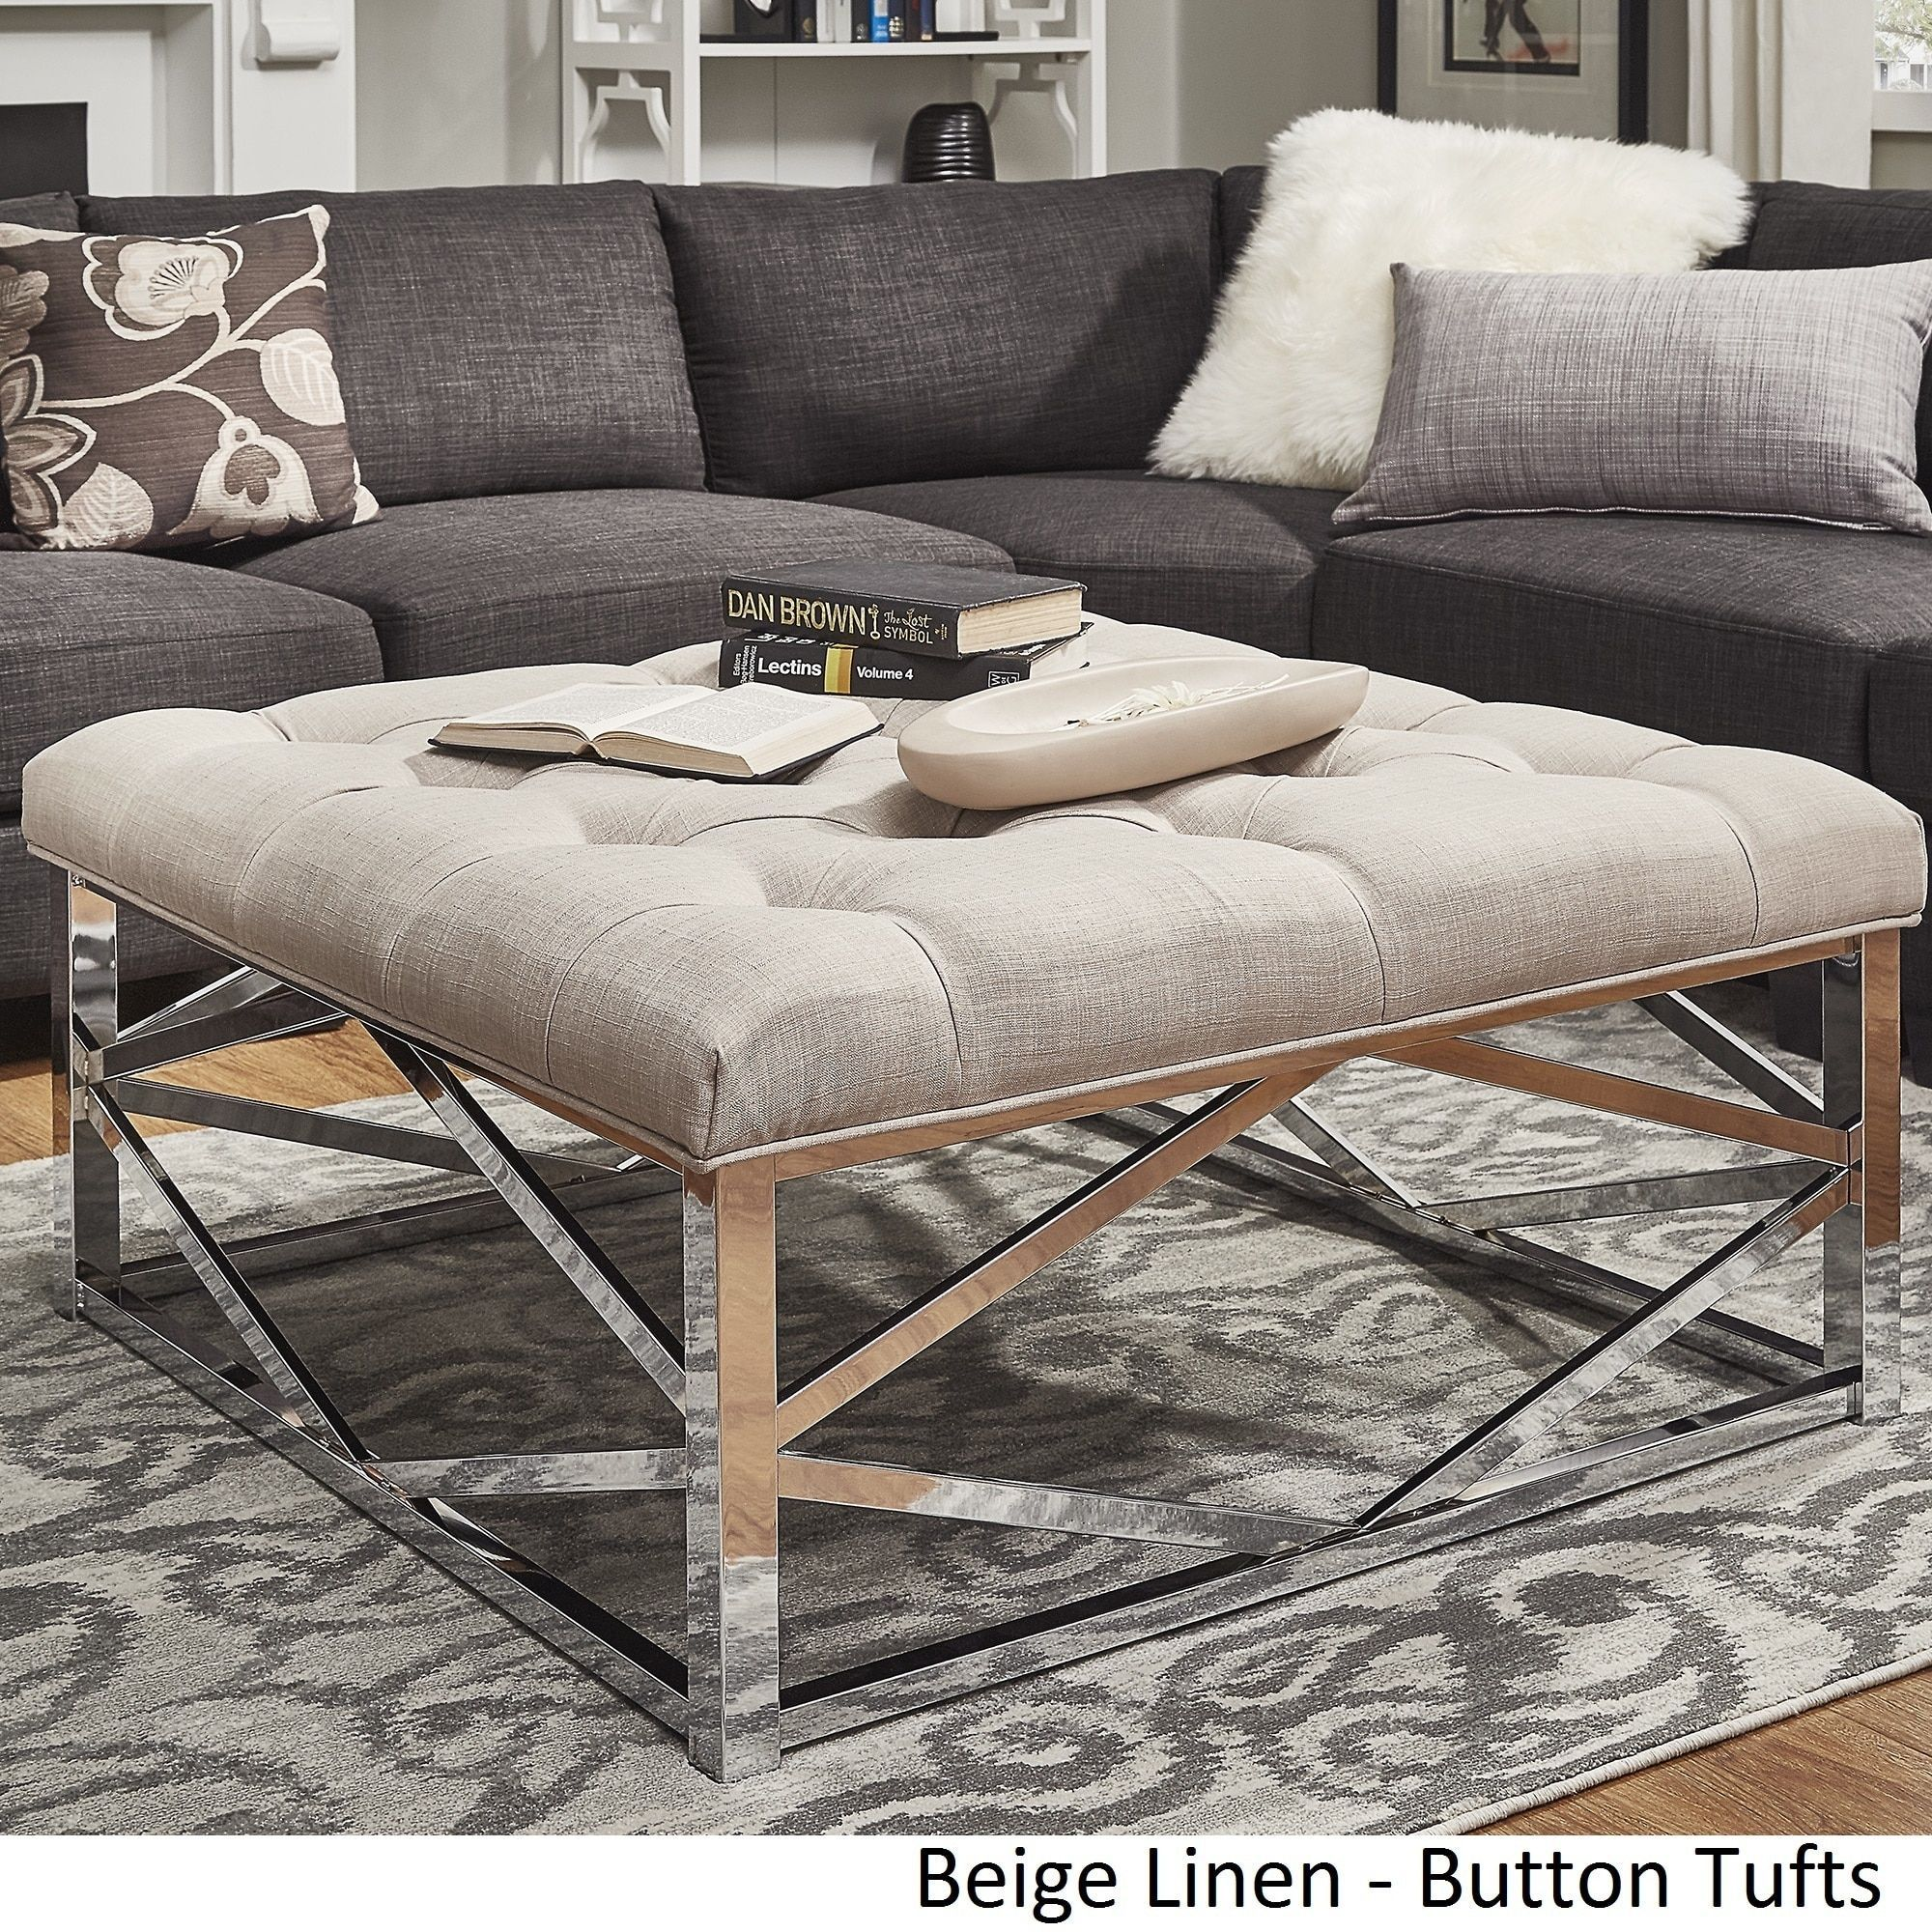 Solene Geometric Base Square Ottoman Coffee Table - Chrome by Inspire Q ([ Dark Brown PU]- Dimpled Tufts)